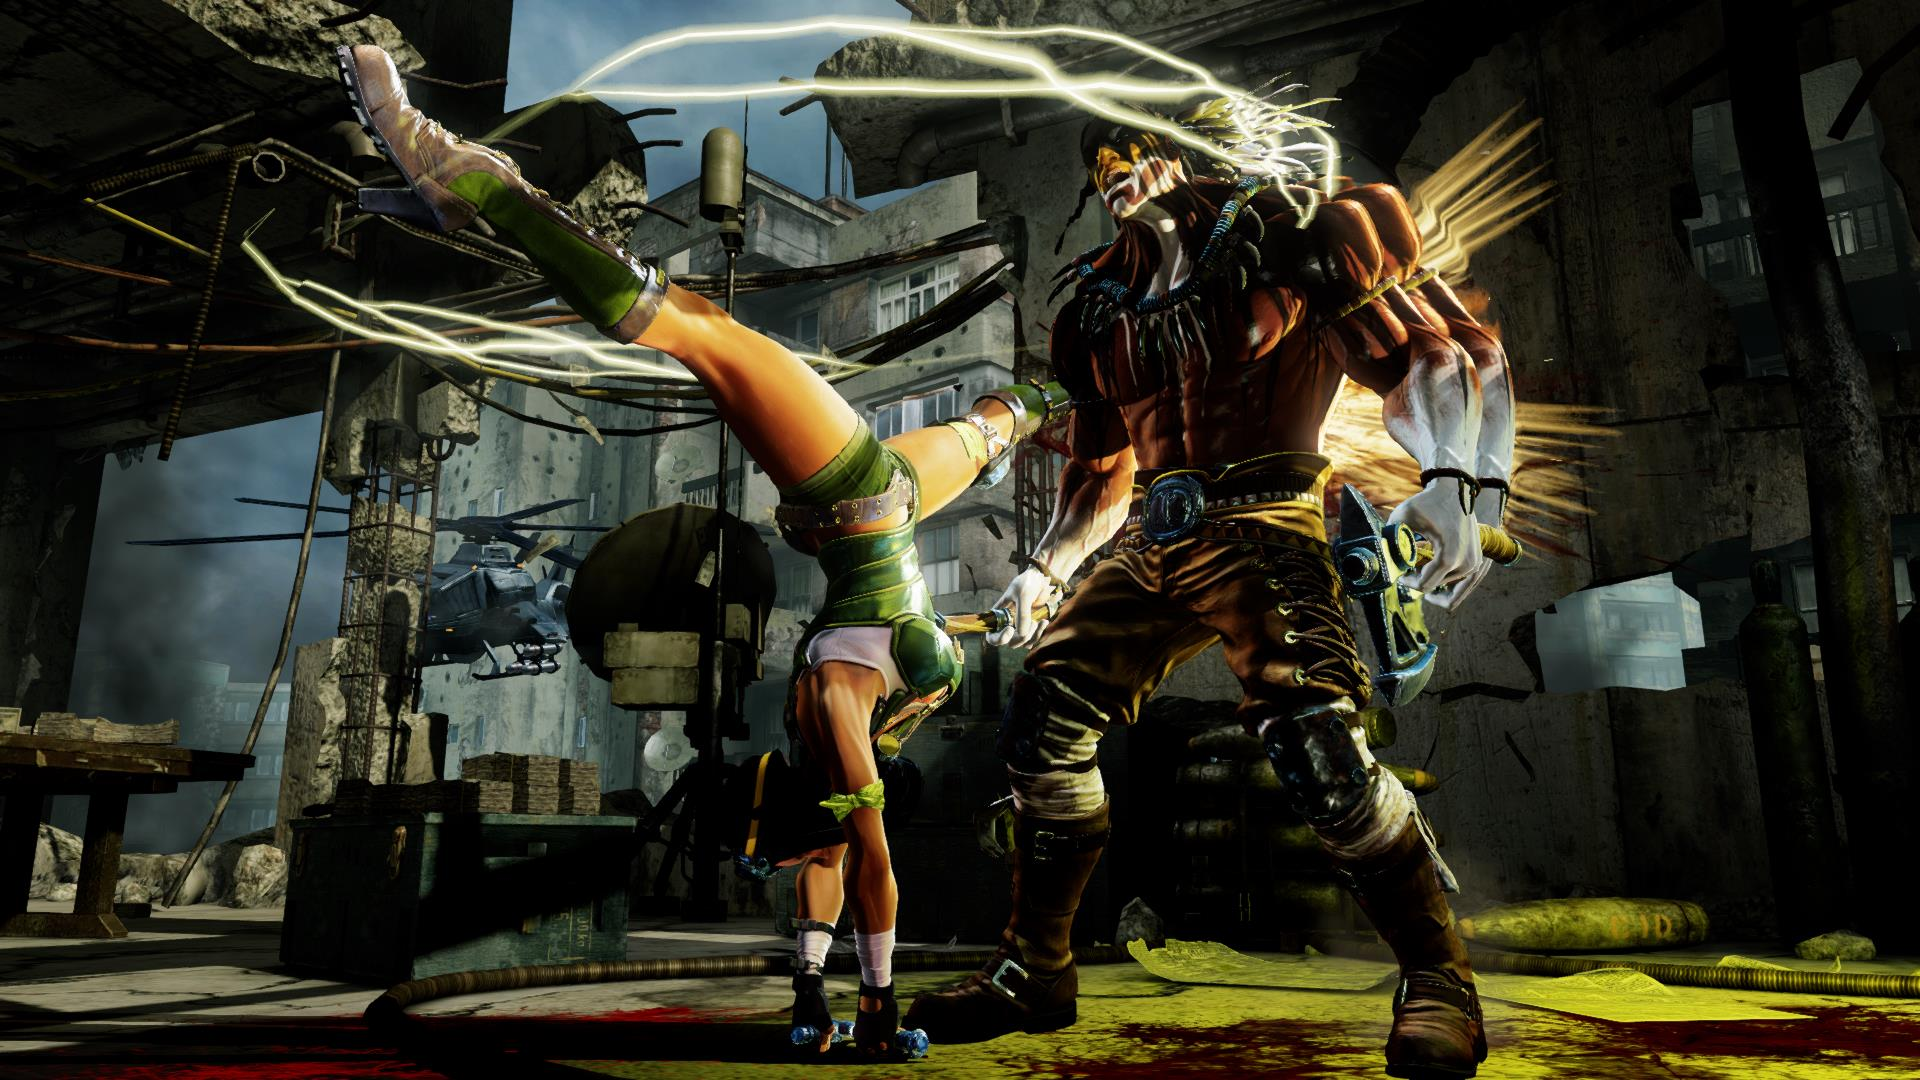 Triple Trials! in Killer Instinct